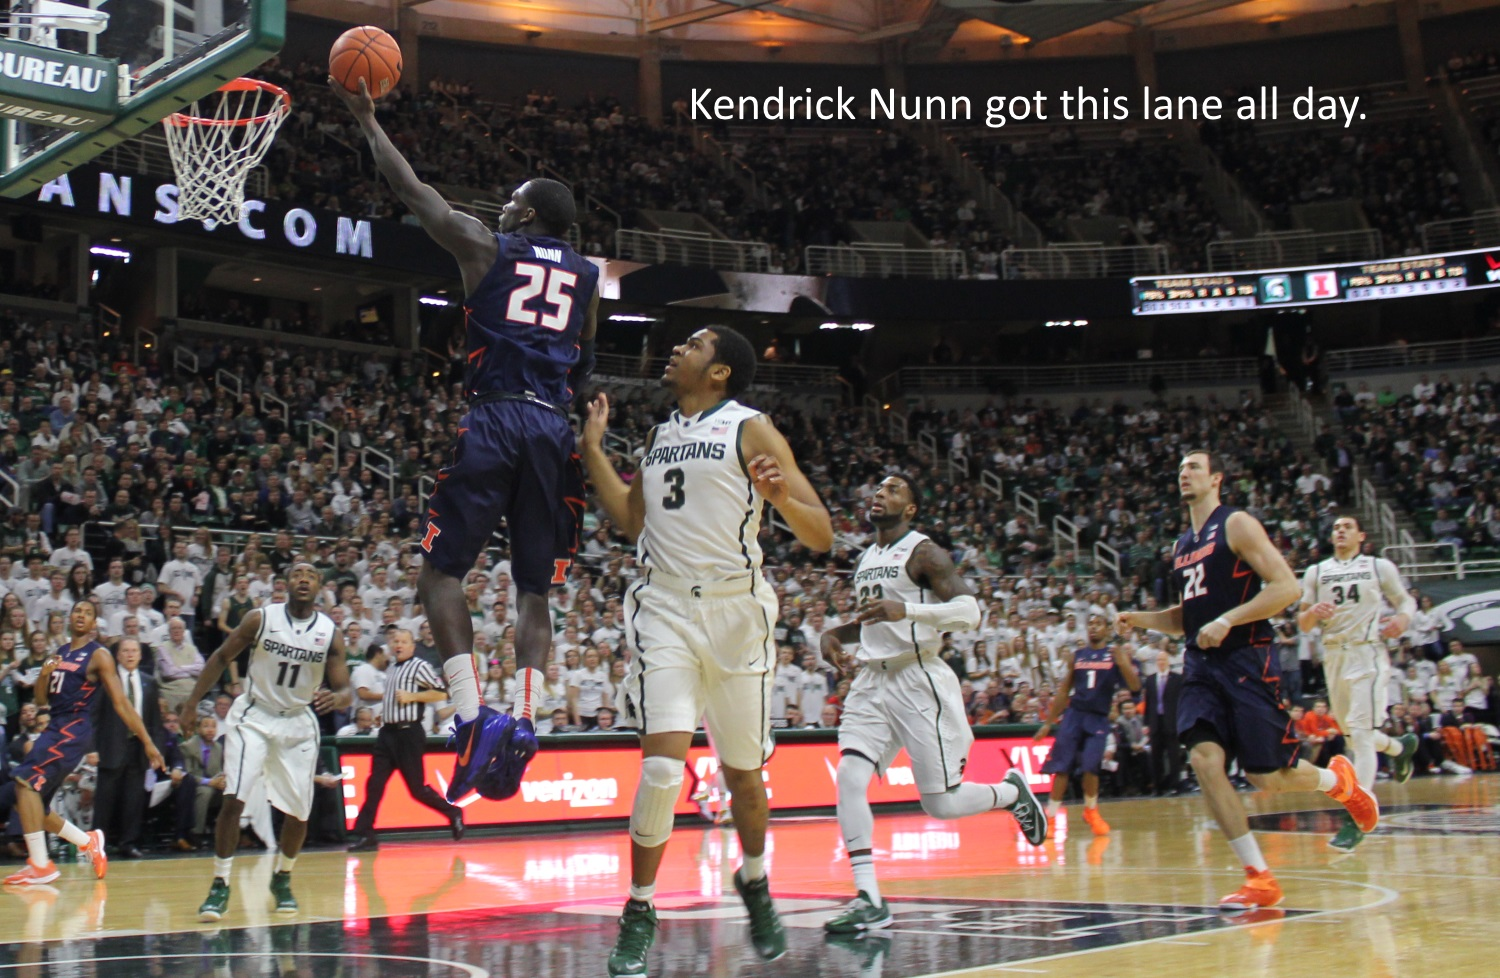 Kendrick Nunn got this lane all day